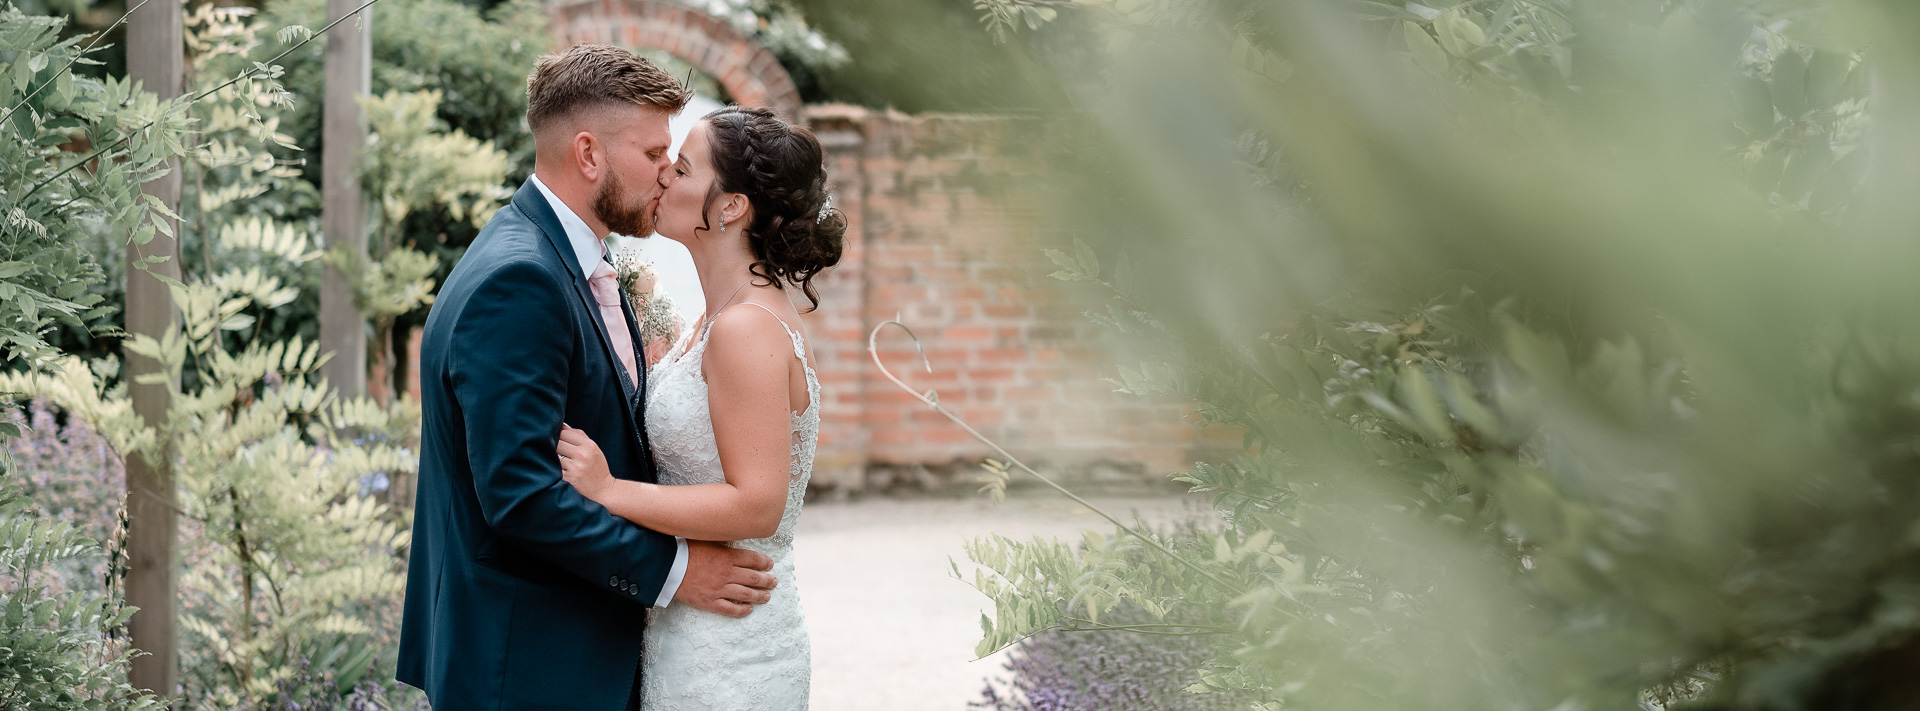 Shannon and Lee's Wedding at Manor Farm Henley